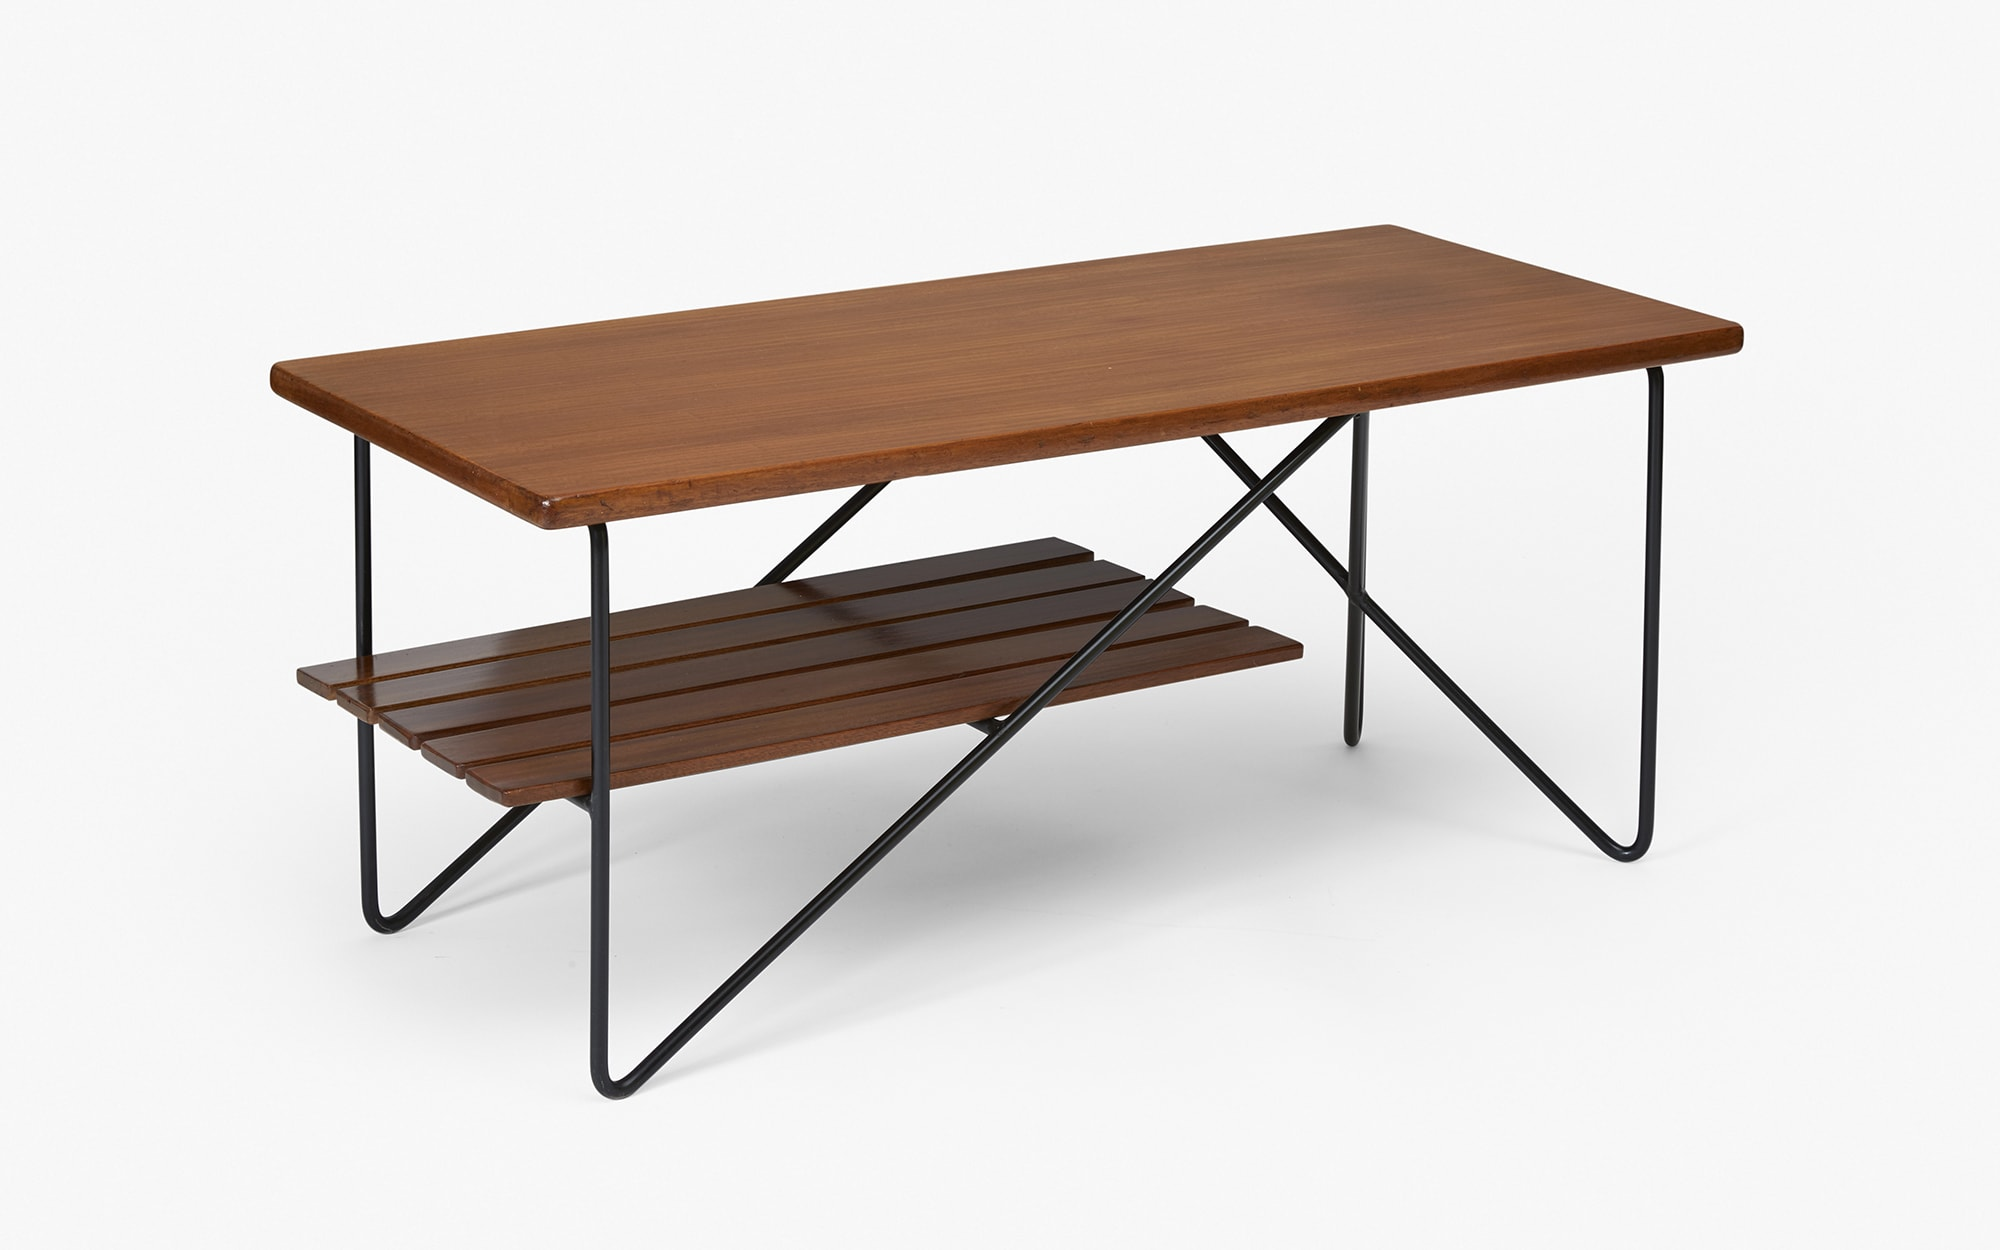 René-Jean Caillette GC56 coffee table